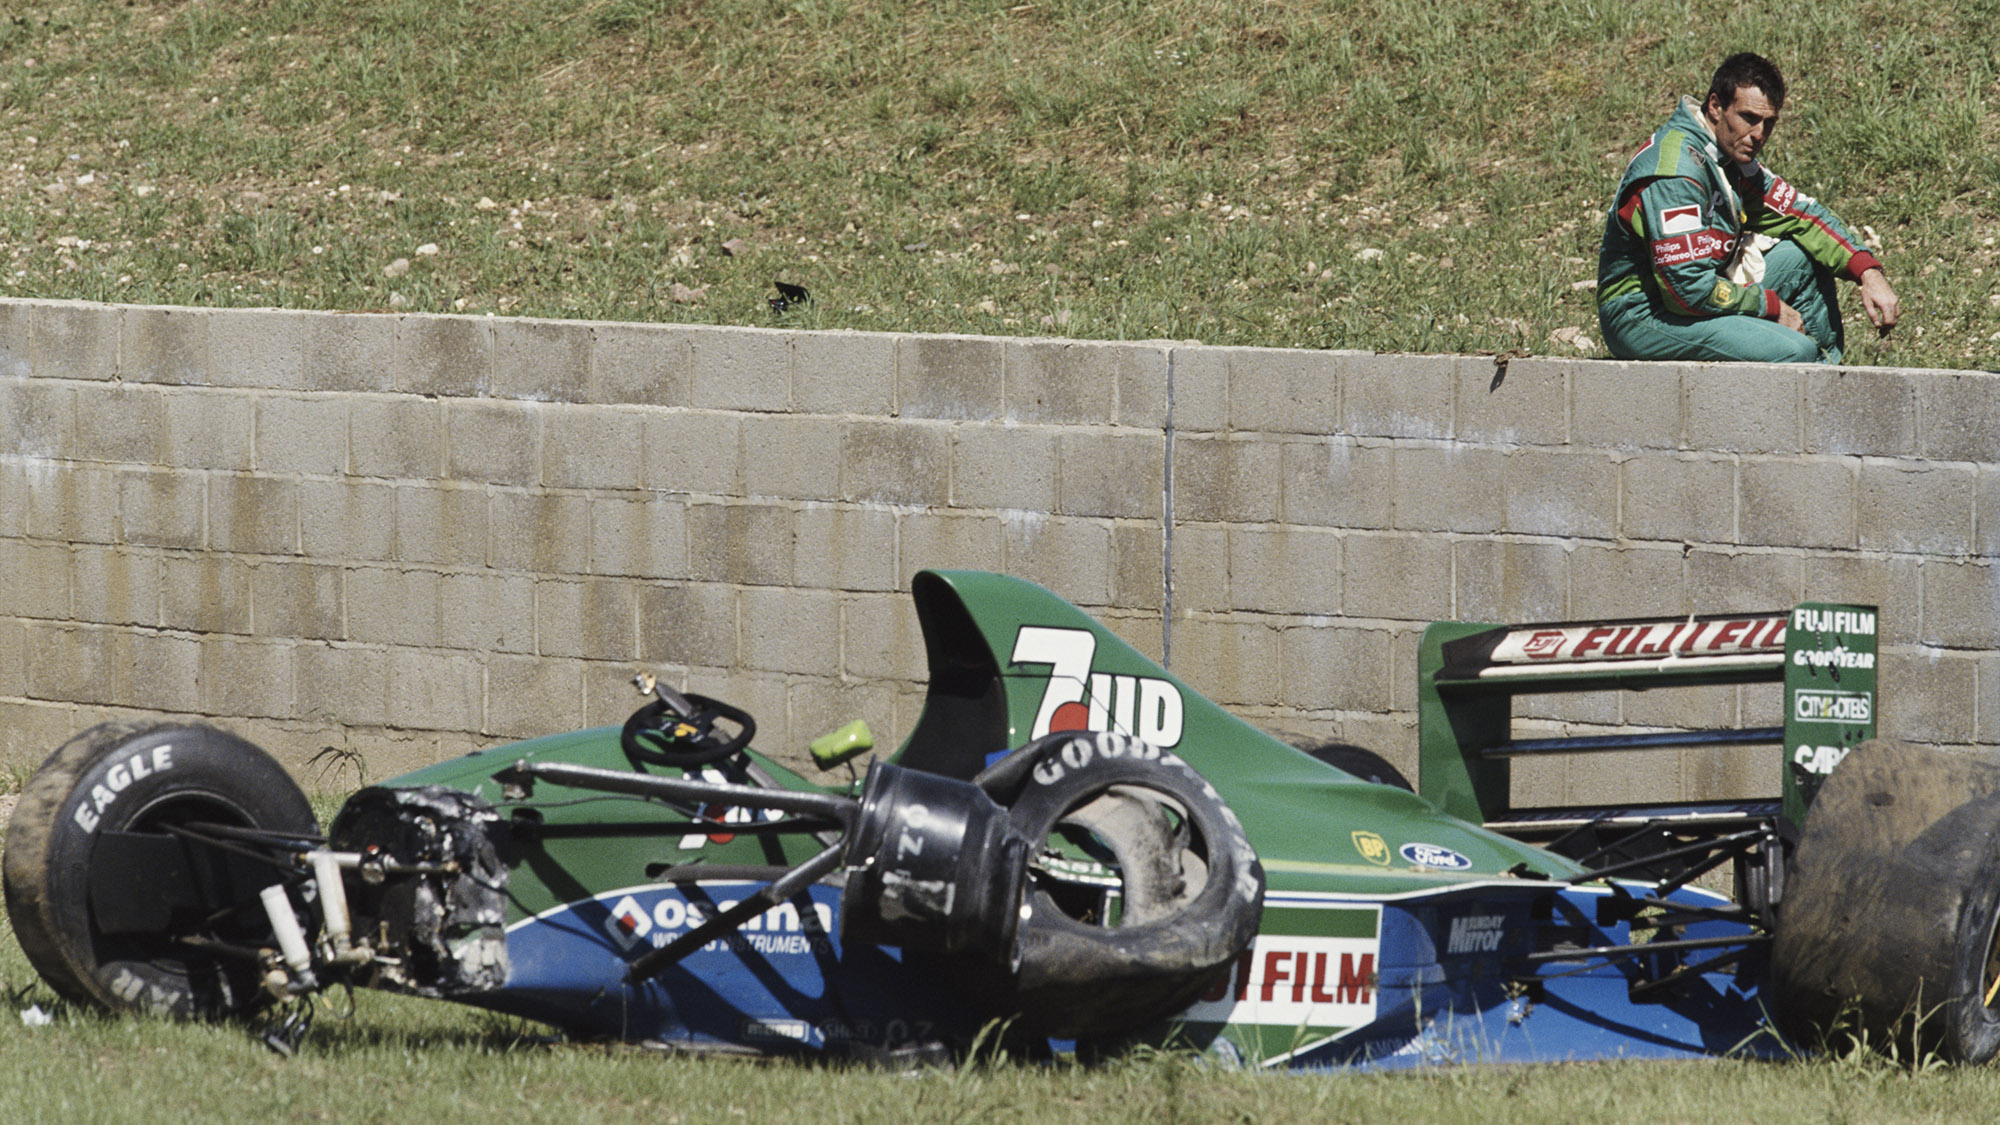 Andrea de Cesaris after crashing out of the 1991 F1 British Grand Prix